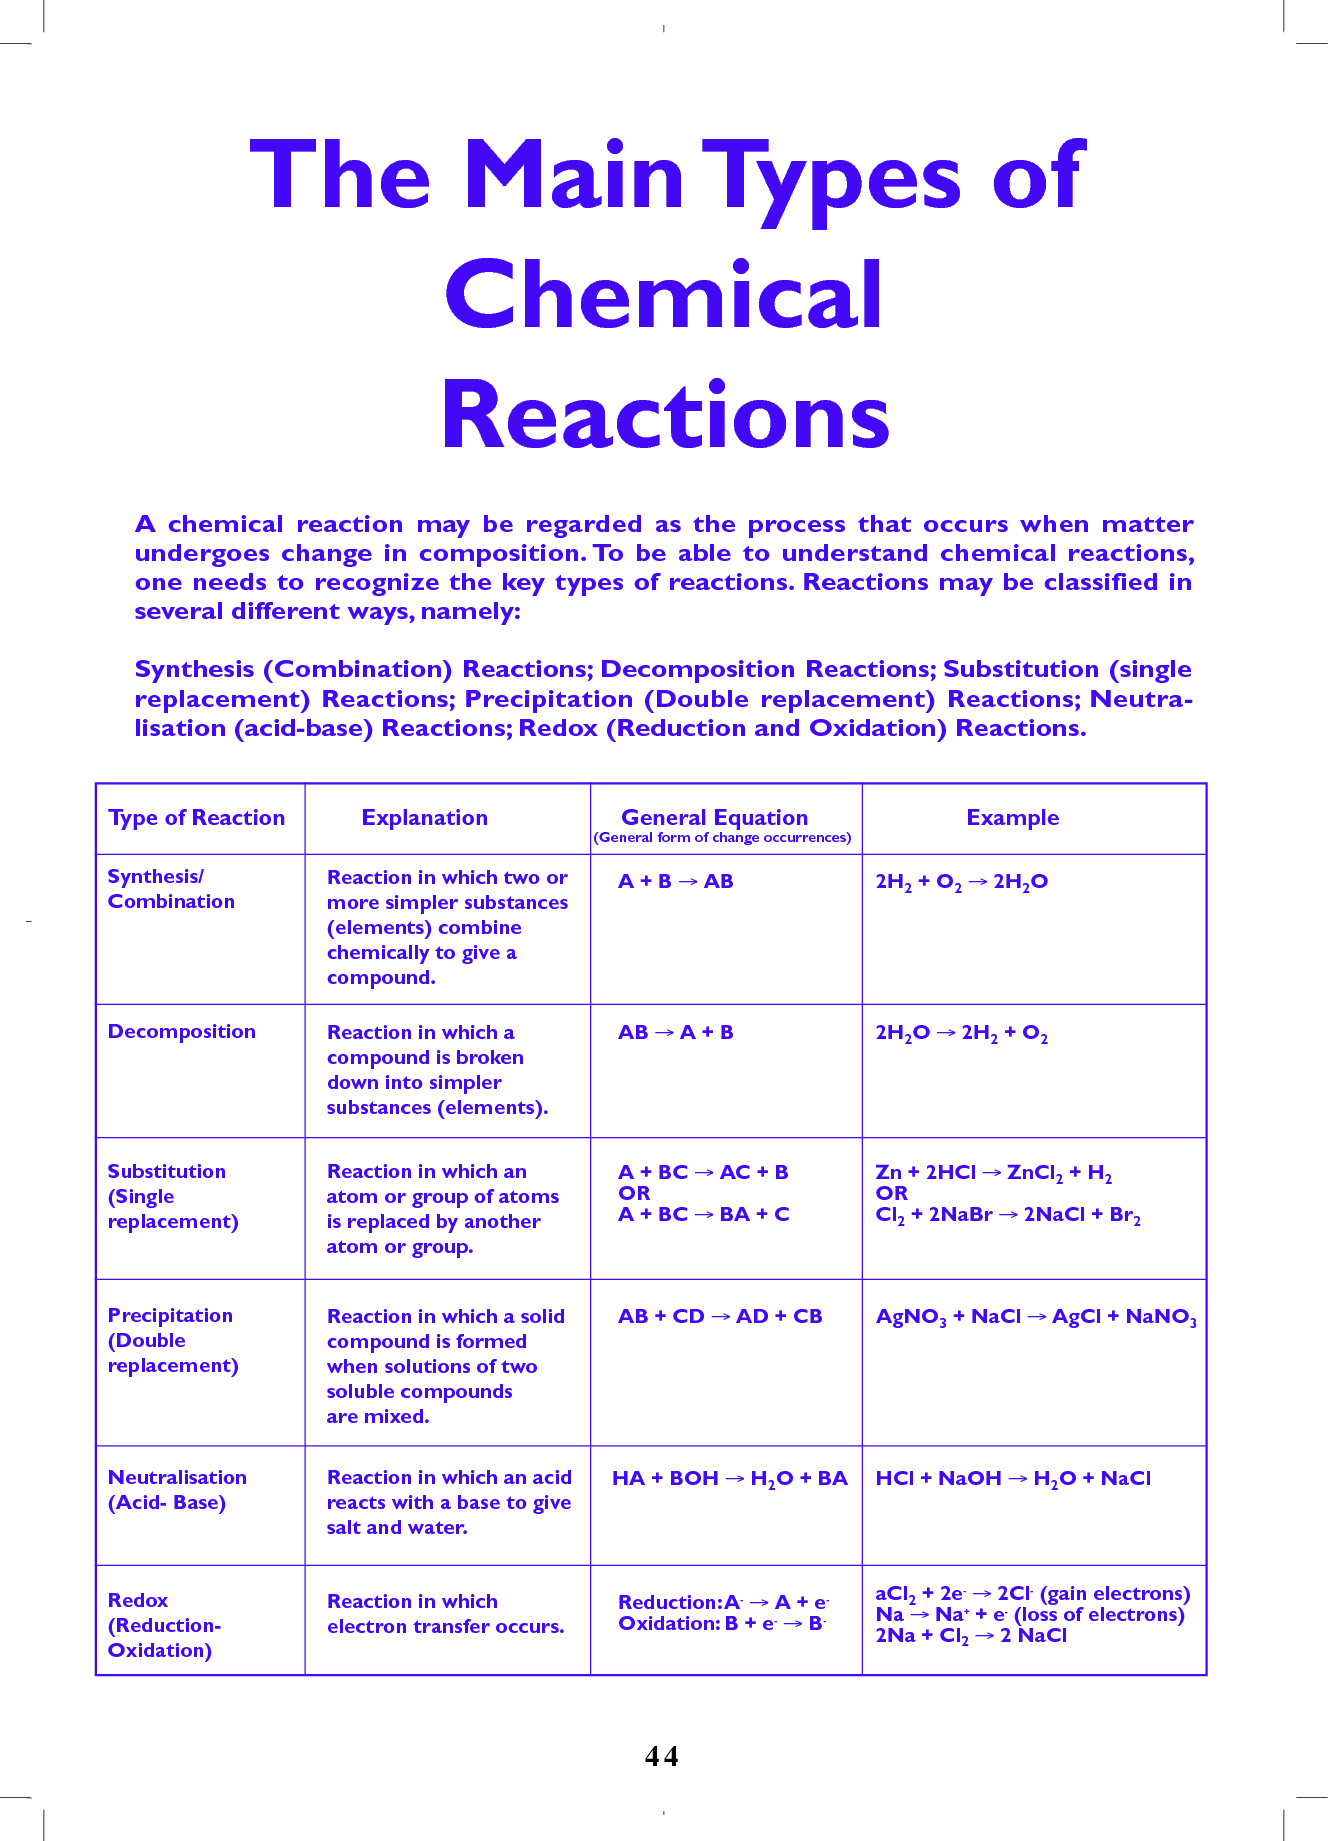 Worksheets Classification Of Chemical Reactions Worksheet types of chemical reactions the main reactions